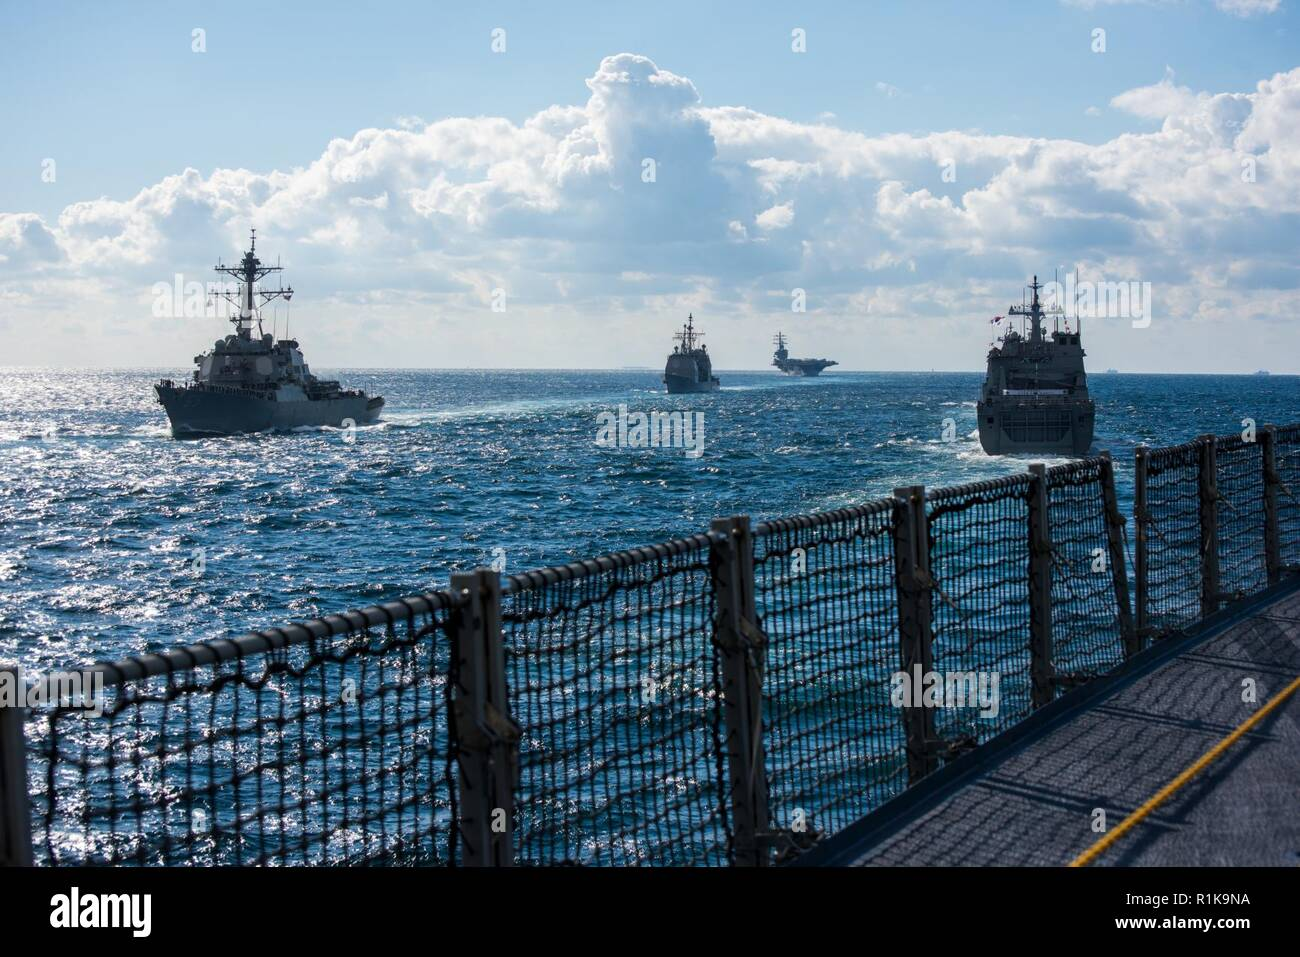 JEJU ISLAND, Republic of Korea, Republic of Korea (Oct. 11, 2018) The guided-missile destroyer USS Benfold (DDG 65), guided-missile cruiser USS Chancellorsville (CG 62) and the forward-deployed nuclear-powered aircraft carrier USS Ronald Reagan (CVN 76) participate in a pass-in-review led by the Republic of Korea Ship (ROKS) Il Chu Bong (LST 688) during the ROK 2018 International Fleet Review (IFR). The IFR is conducted every 10 years and has participants and observers from more than 20 foreign navies. Stock Photo